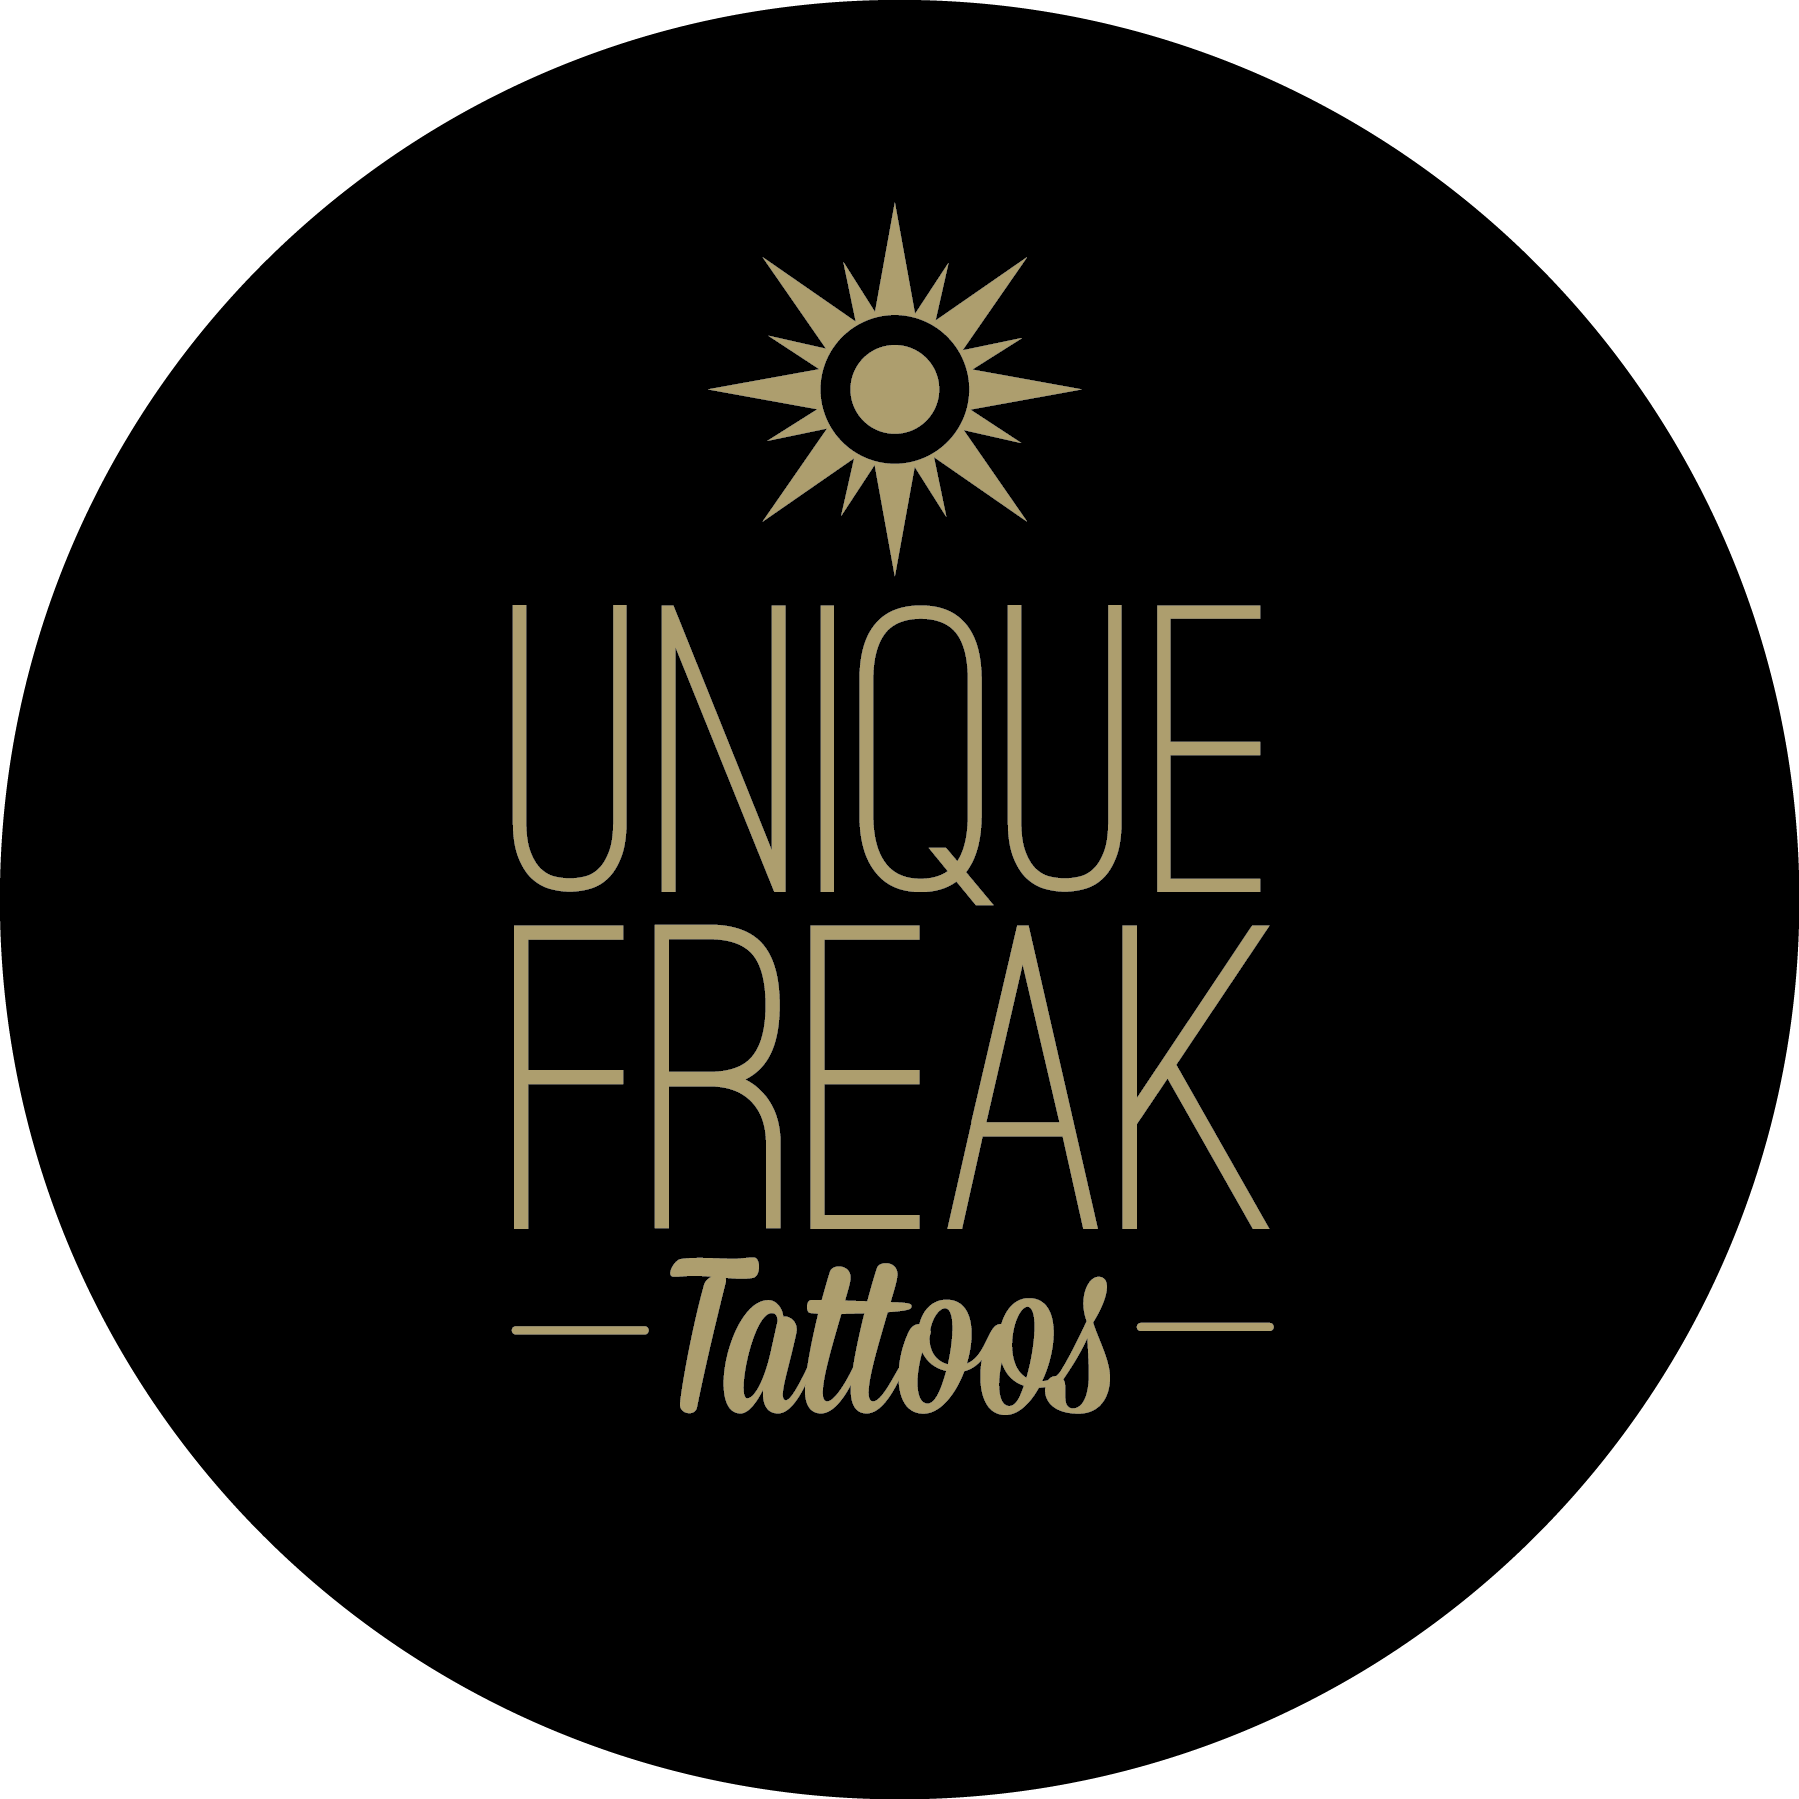 unique freak tattoos